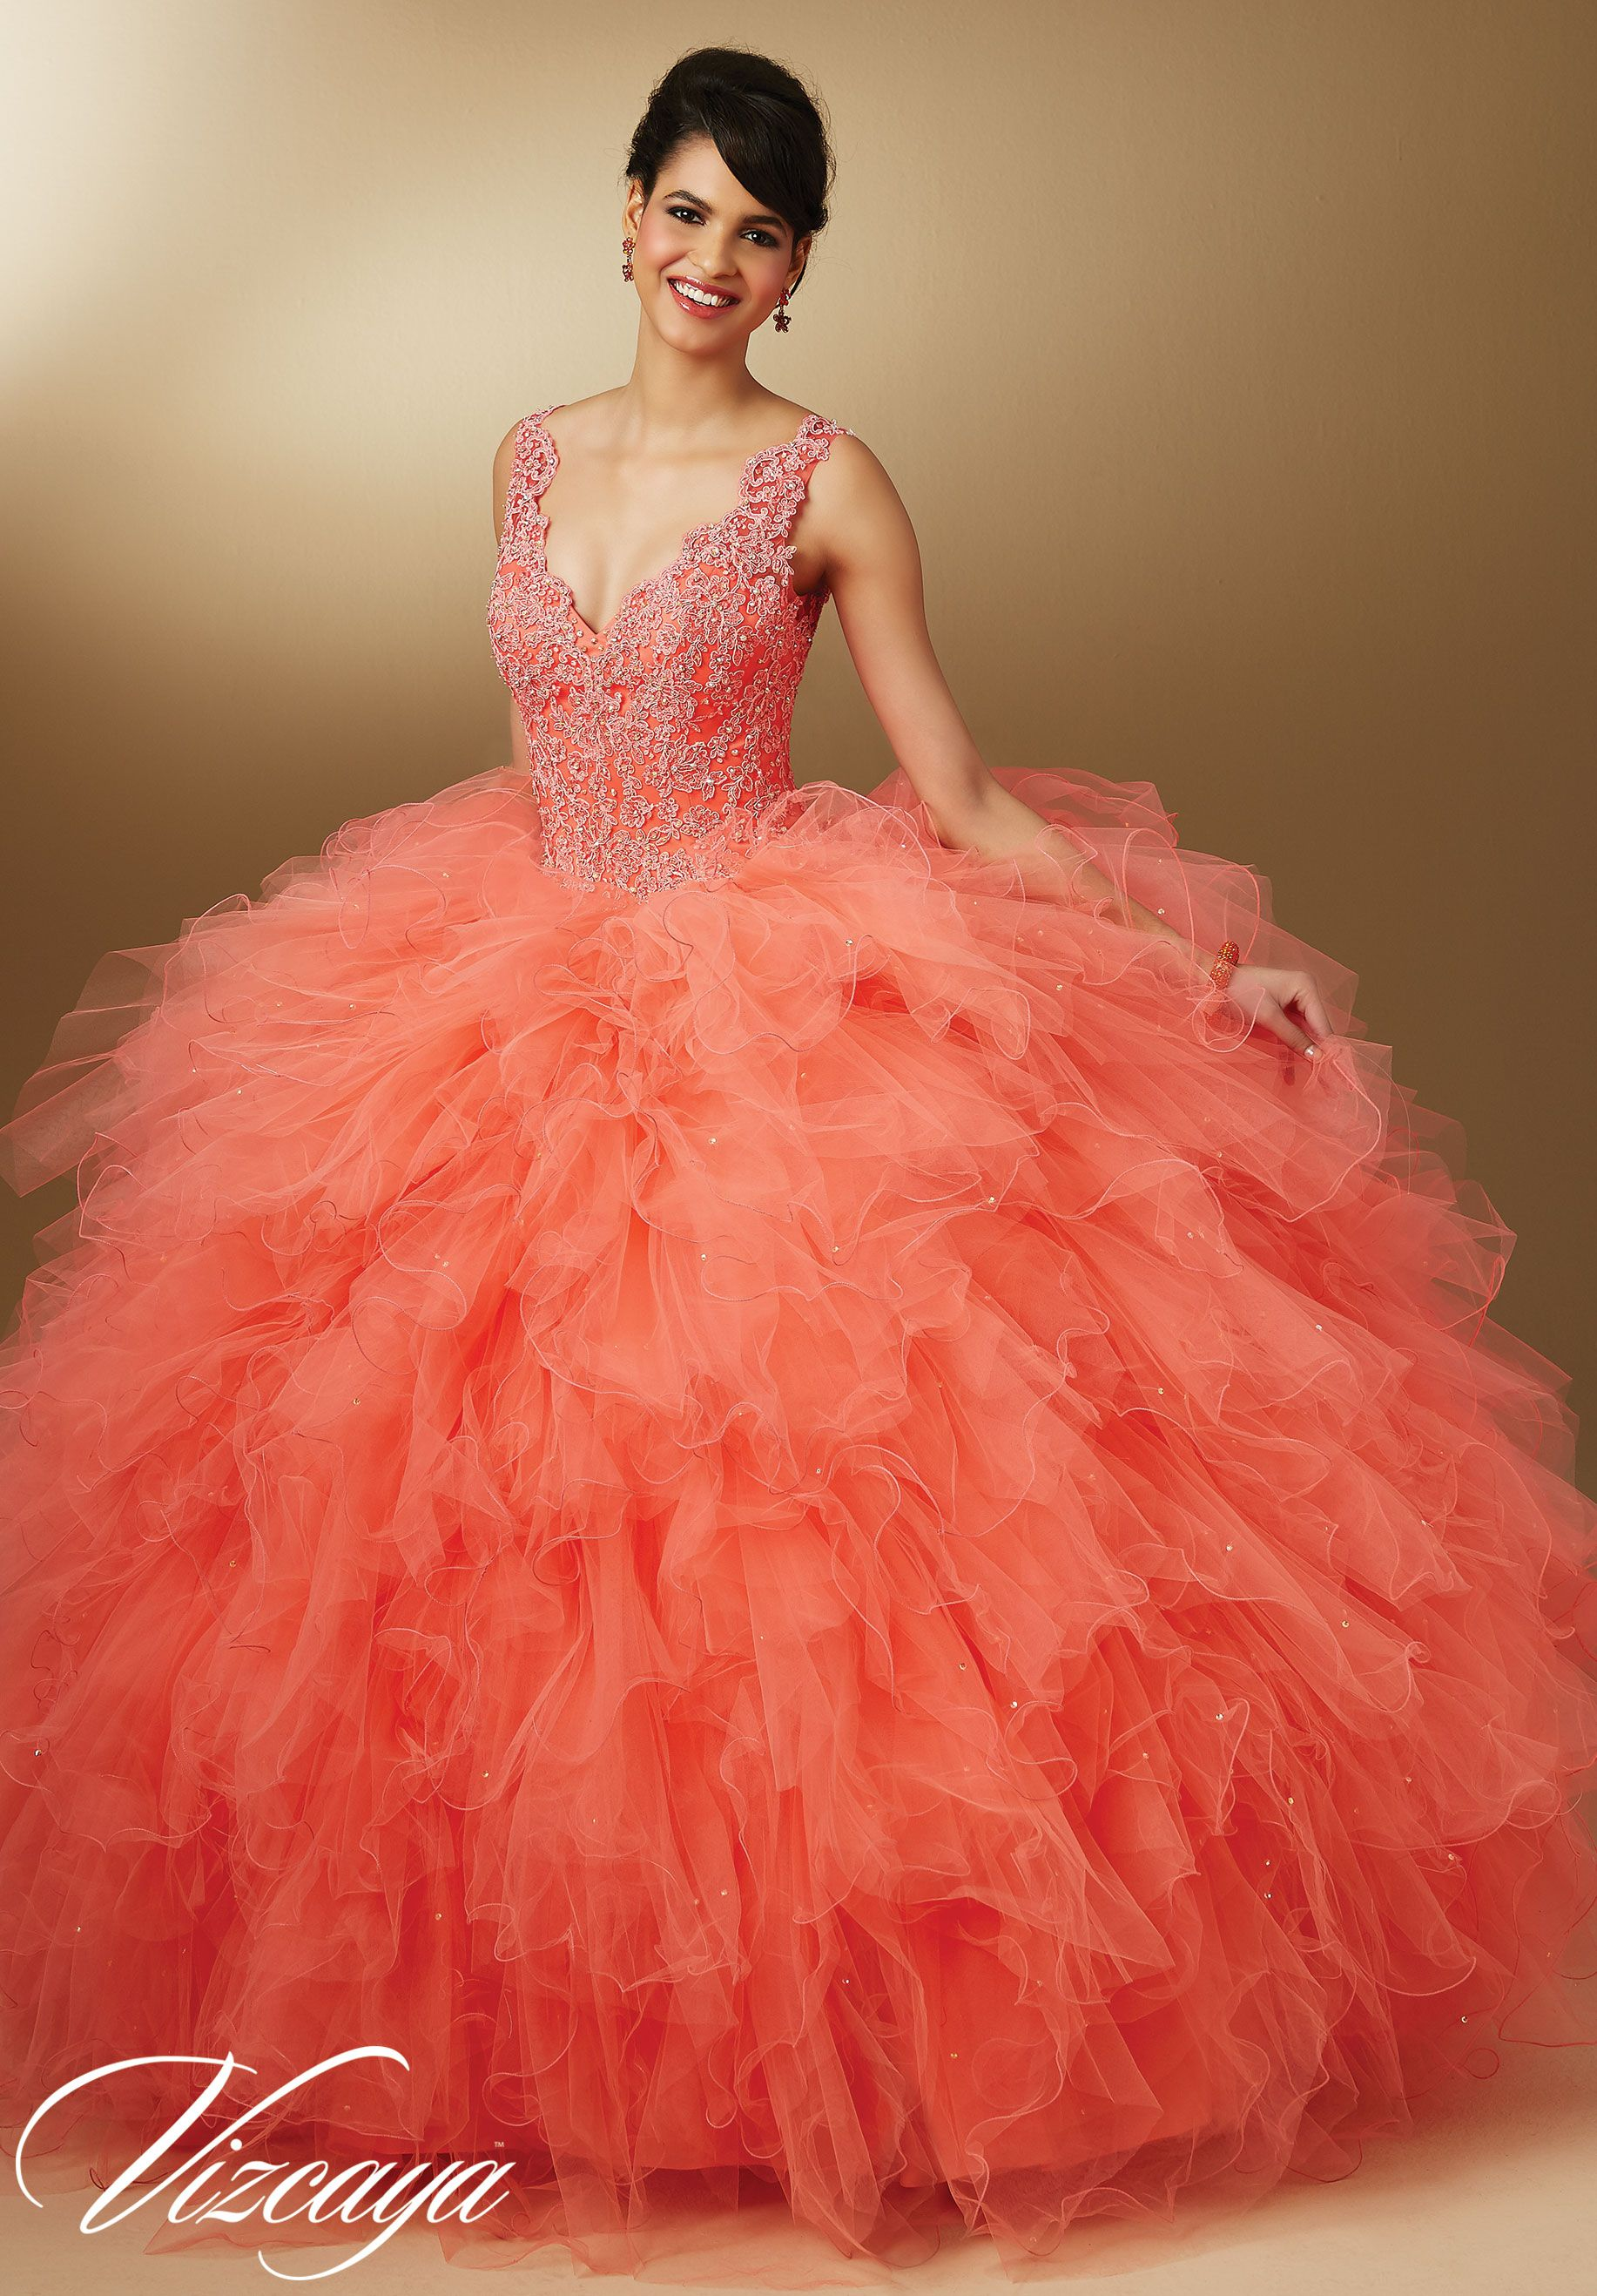 89042 Quinceanera Gowns Crystal Beaded Lace on Ruffled Tulle | Sweet ...